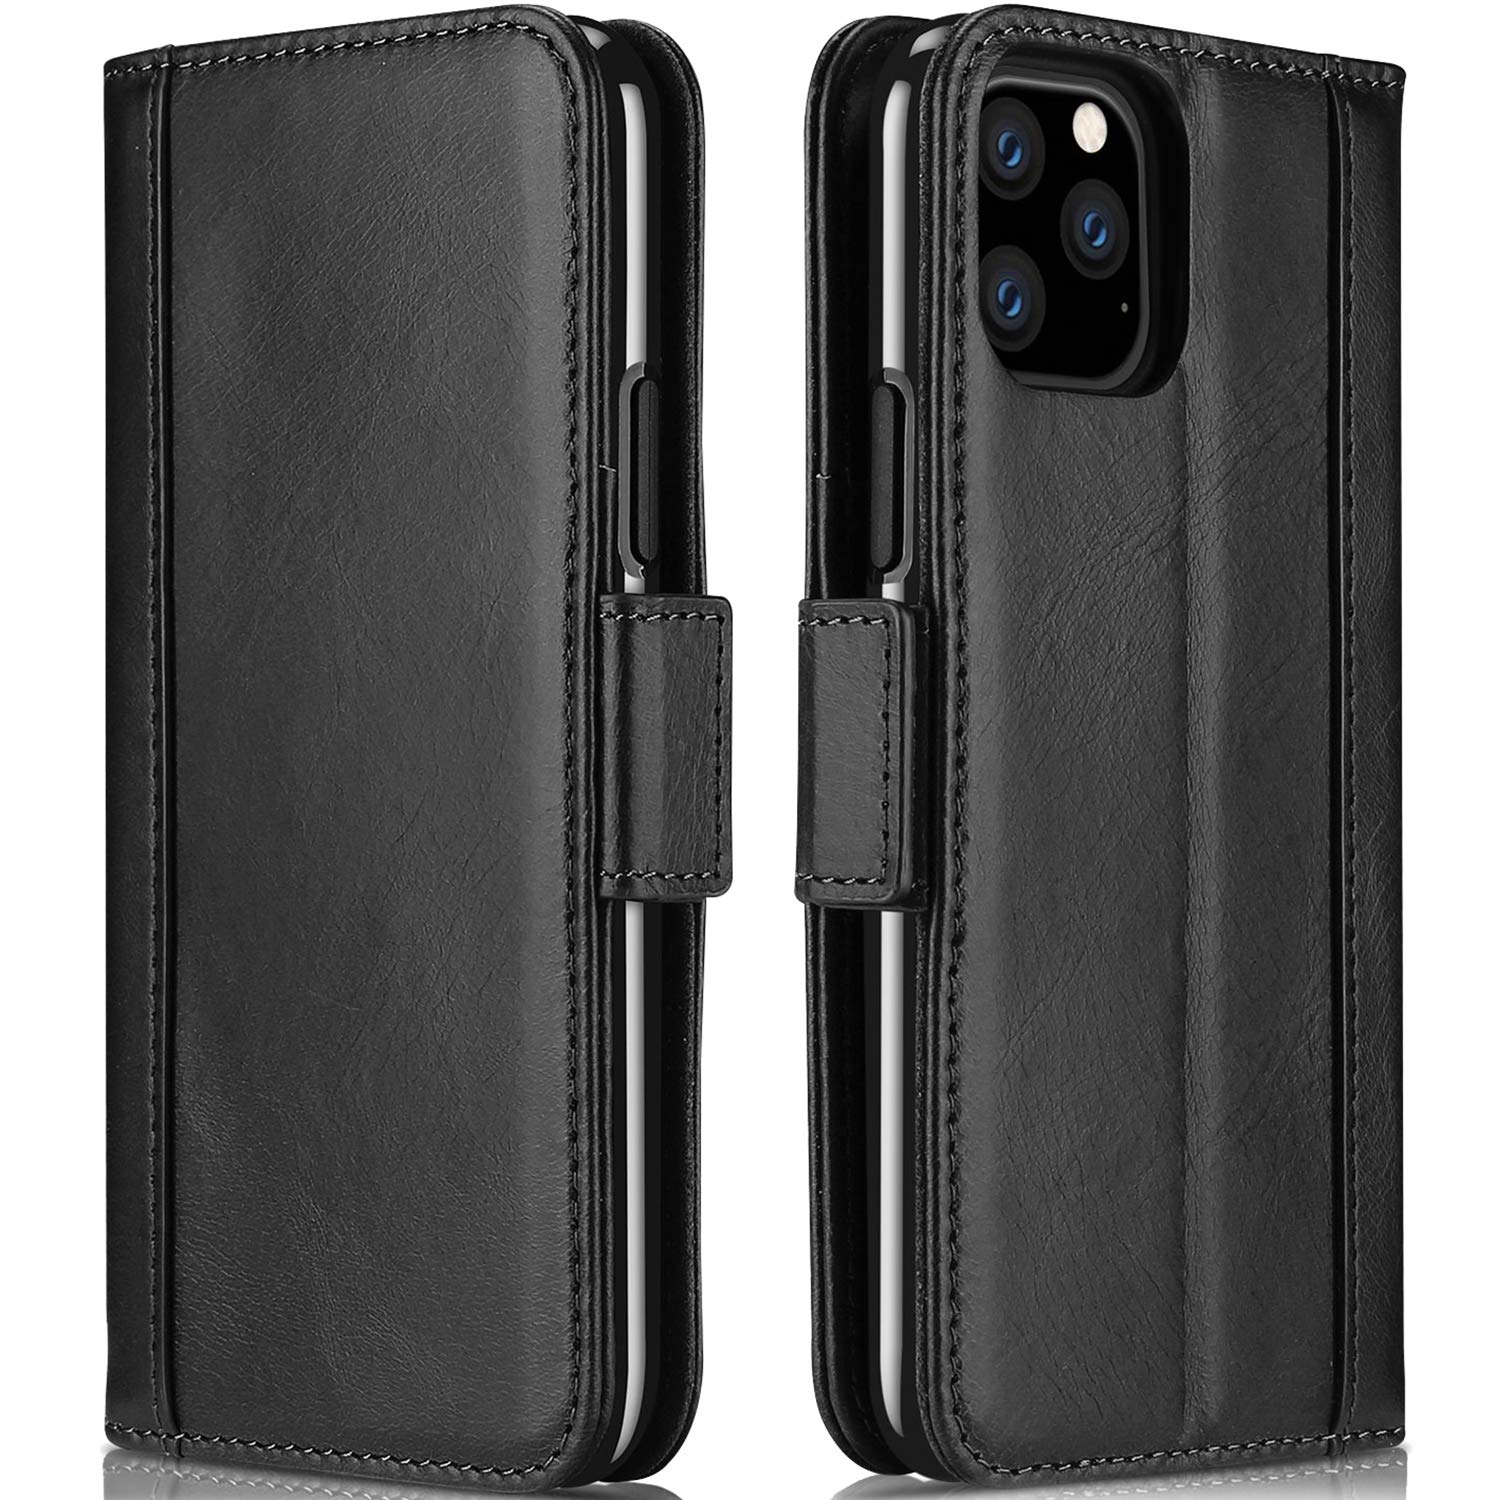 ProCase iPhone 11 Pro Max Genuine Leather Case, Vintage Folio Flip Case with Kickstand Card Holders Leather Wallet Case for iPhone 11 Pro Max 2019 -Black by ProCase